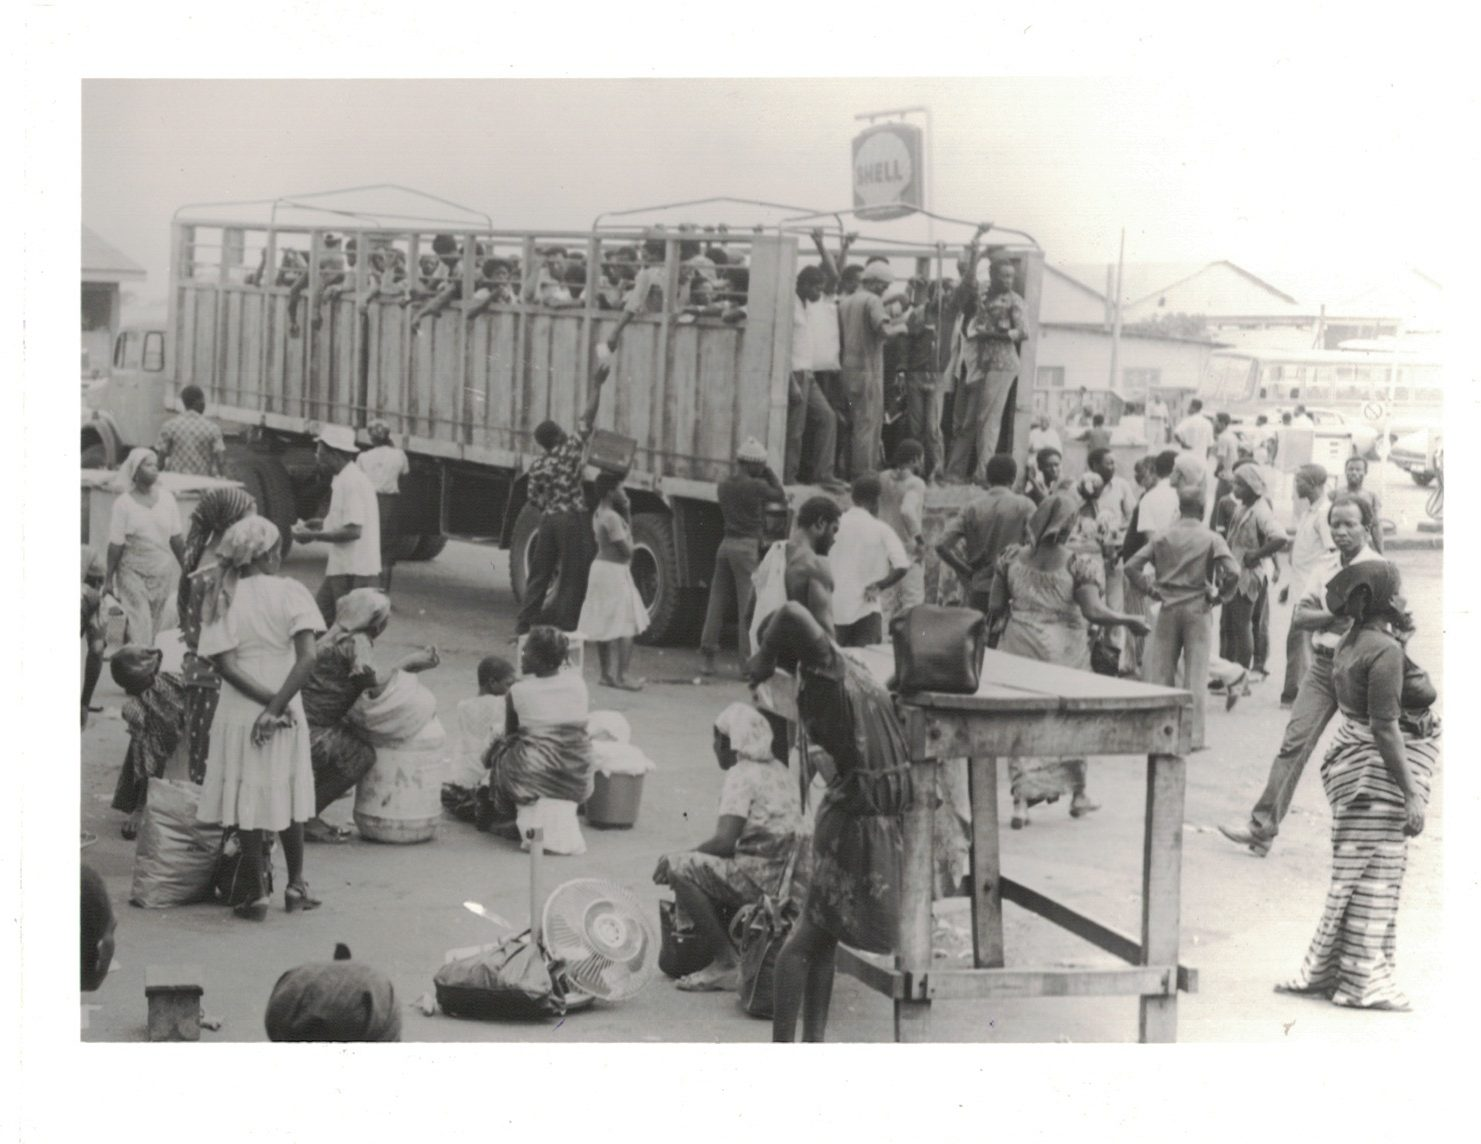 """""""Passengers boarding articulated truck at the Kaneshie/Takoradi Station,"""" Transportation Problem in Accra, 5/2/1983, Chris Briandt. Source: PS/2856/6, Photographic Section, Information Services Department, Ministry of Information, Accra, Ghana."""